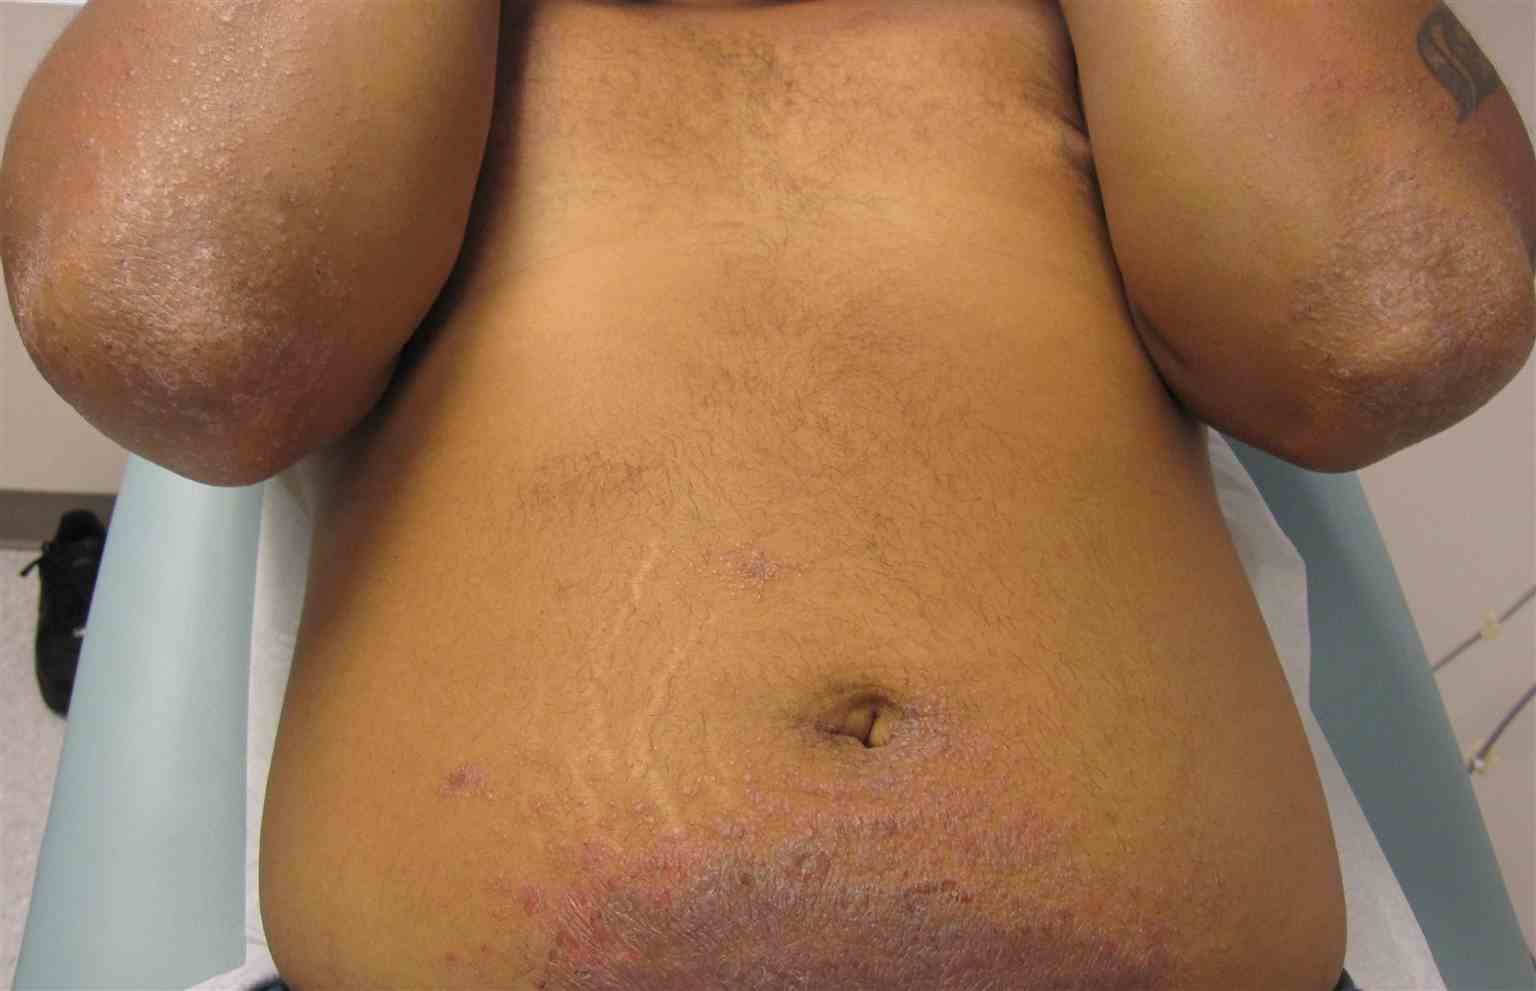 Classic presentation of nickel contact dermatitis involving lower abdomen and id reaction on elbows